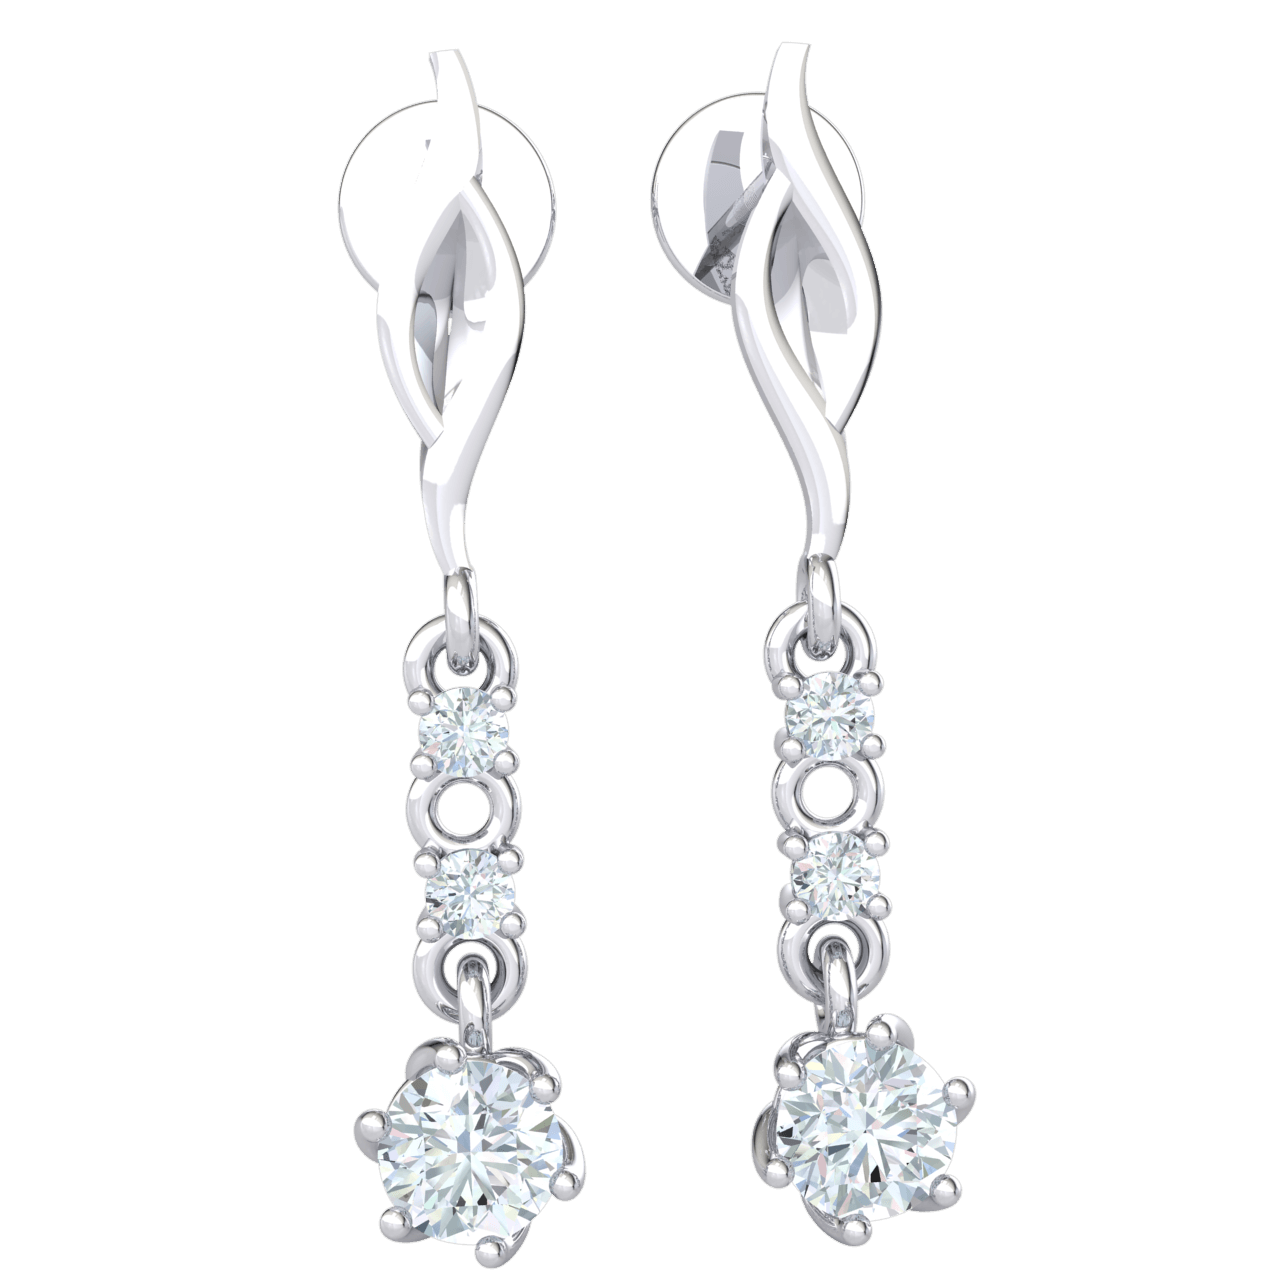 0.51 Ctw Extremely Elegant Real Earrings With 3 White Diamond Solitares In Beautiful Alignment in IJ SI2 14 kt Gold